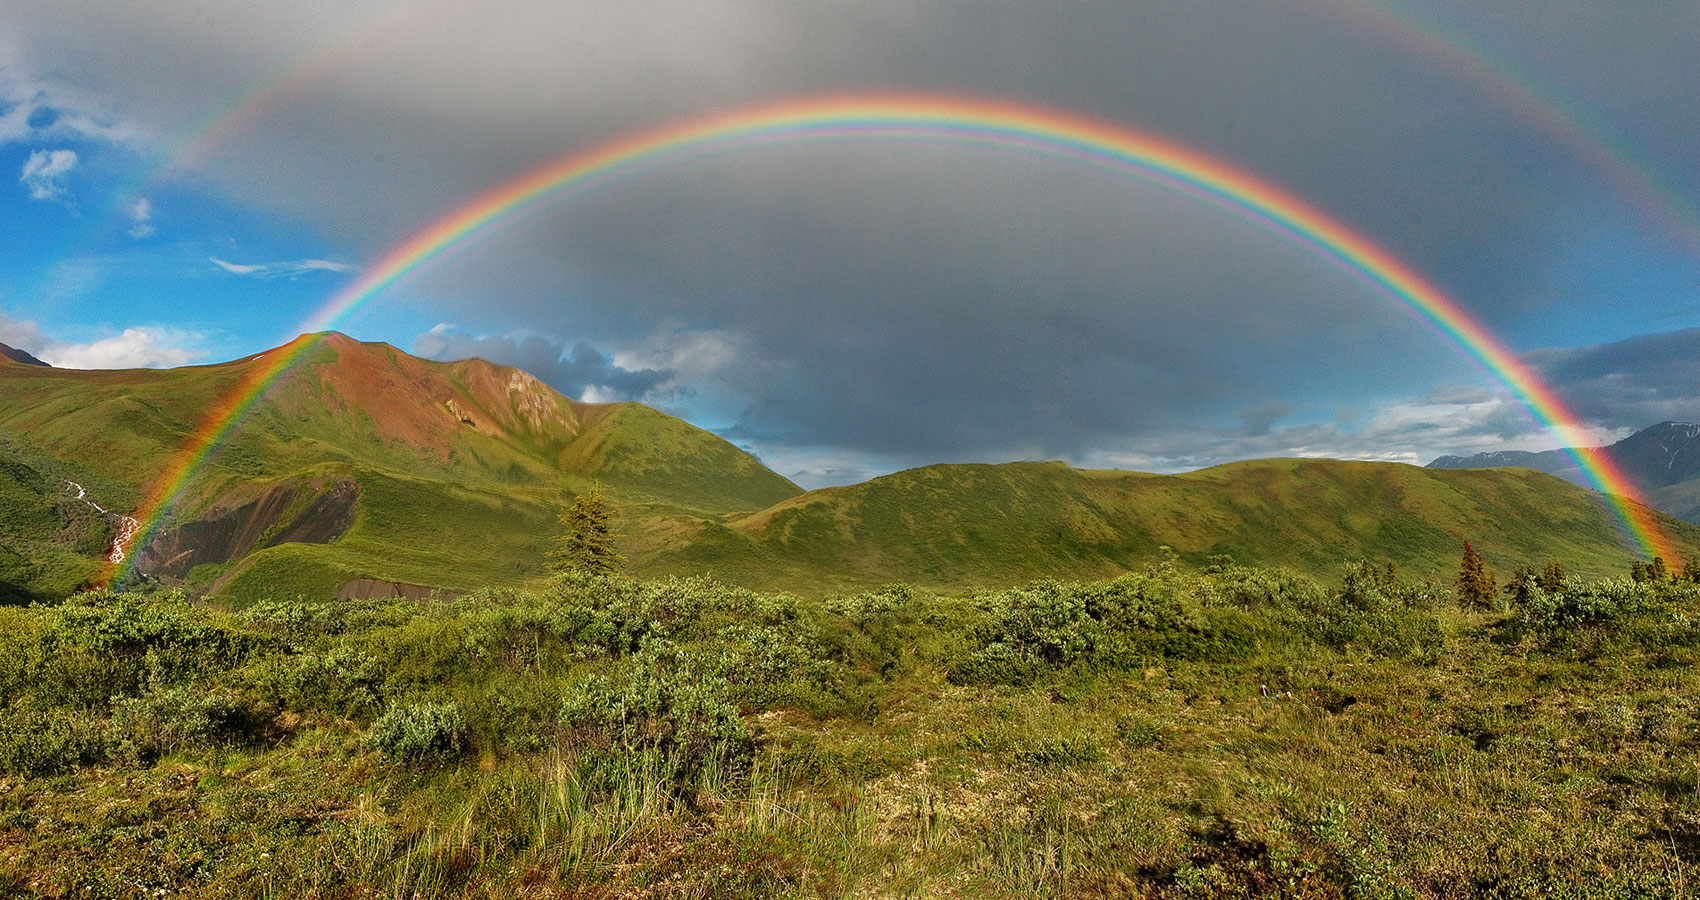 Chasing Rainbows by Steve Pearson at Spillwords.com